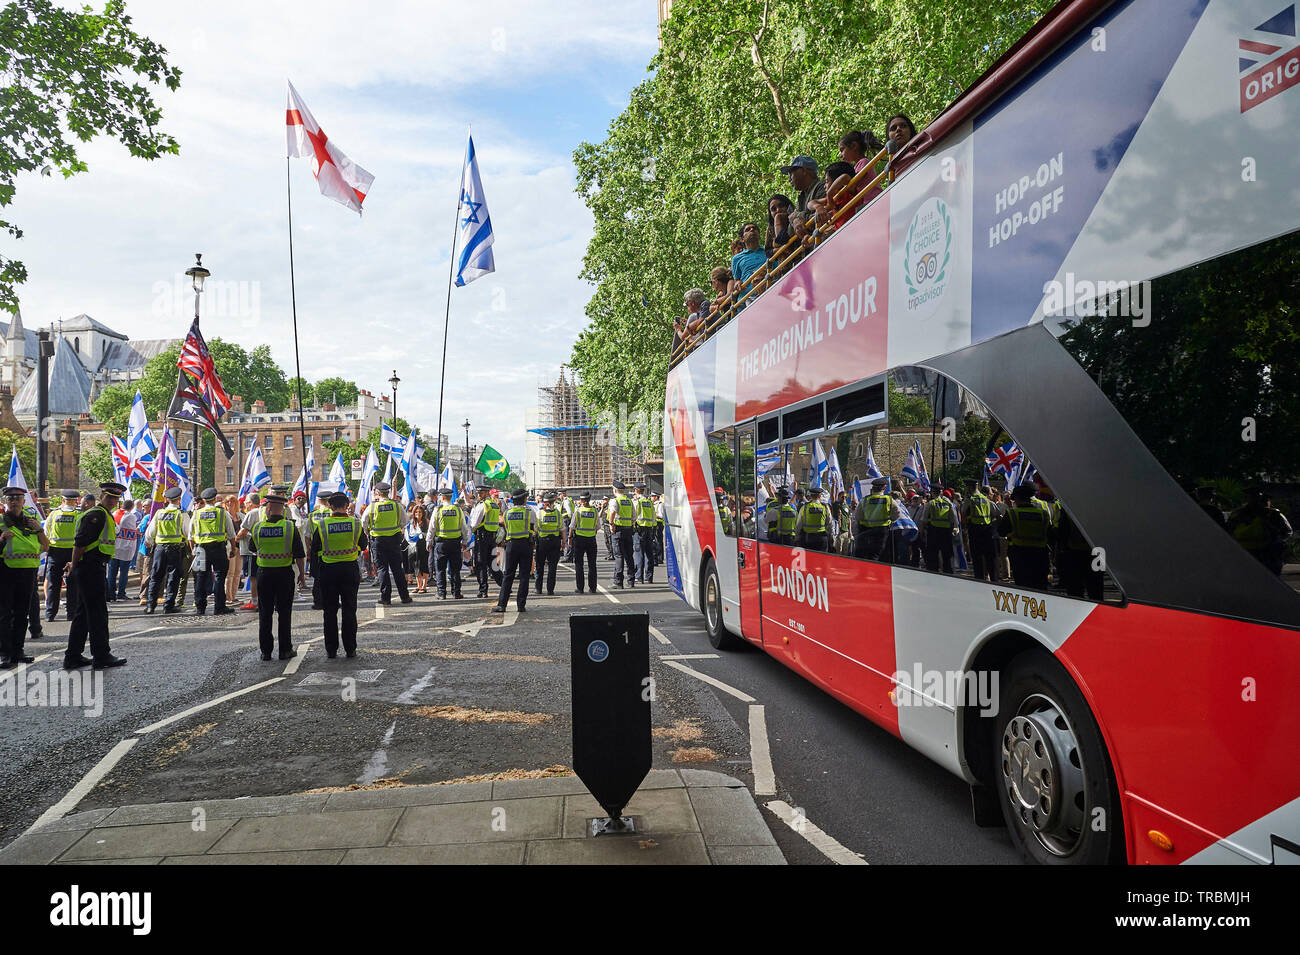 Westminster,  London, UK - 2nd June 2019 The al-Quds Day rally in Westminster, pro Palestine supporters were met by Pro Israel counter protesters during their march in London Today.   Credit: Thomas Bowles/Alamy Live News - Stock Image